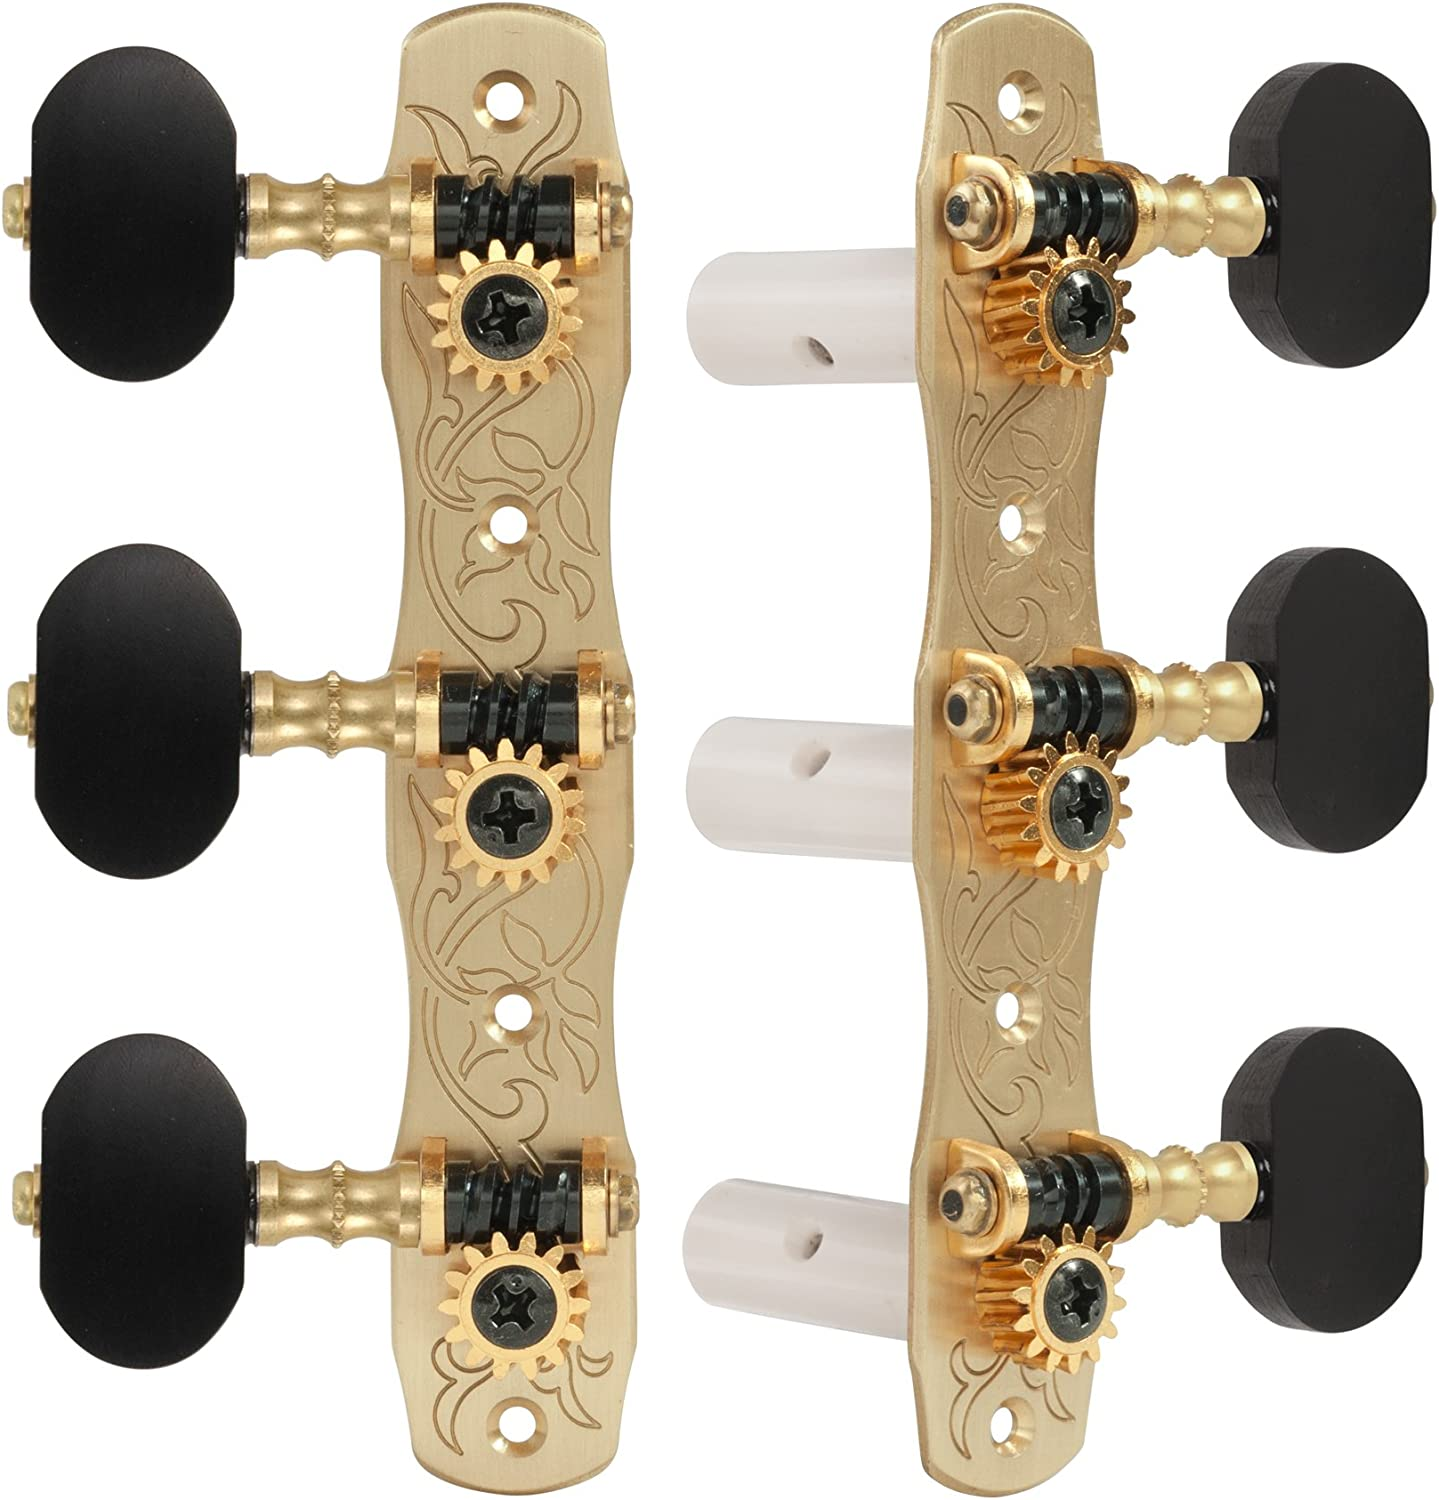 Gotoh Classical Guitar Tuners Knobs with Large discharge sale Ebony Cheap mail order specialty store